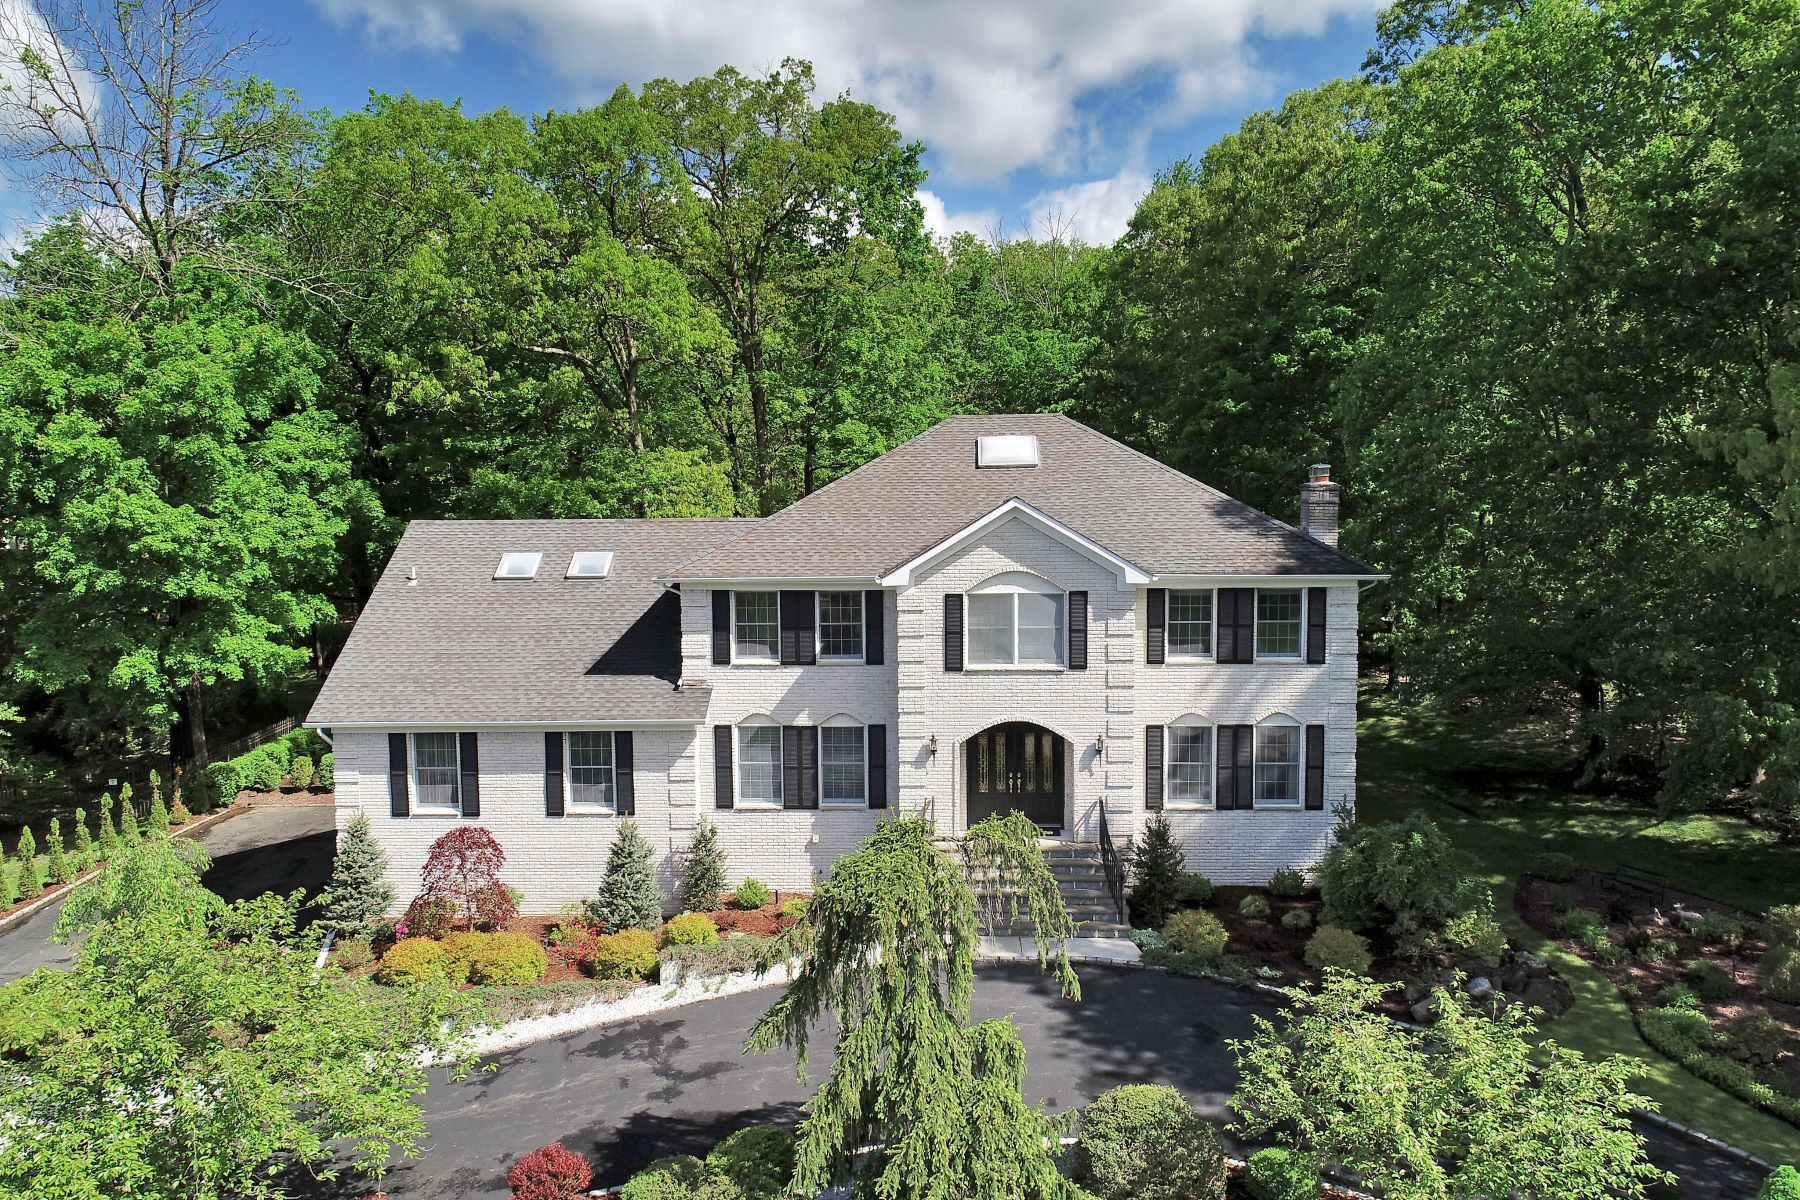 Single Family Homes for Sale at Outstanding Grand Colonial 10 Garrity Terrace Pine Brook, New Jersey 07058 United States